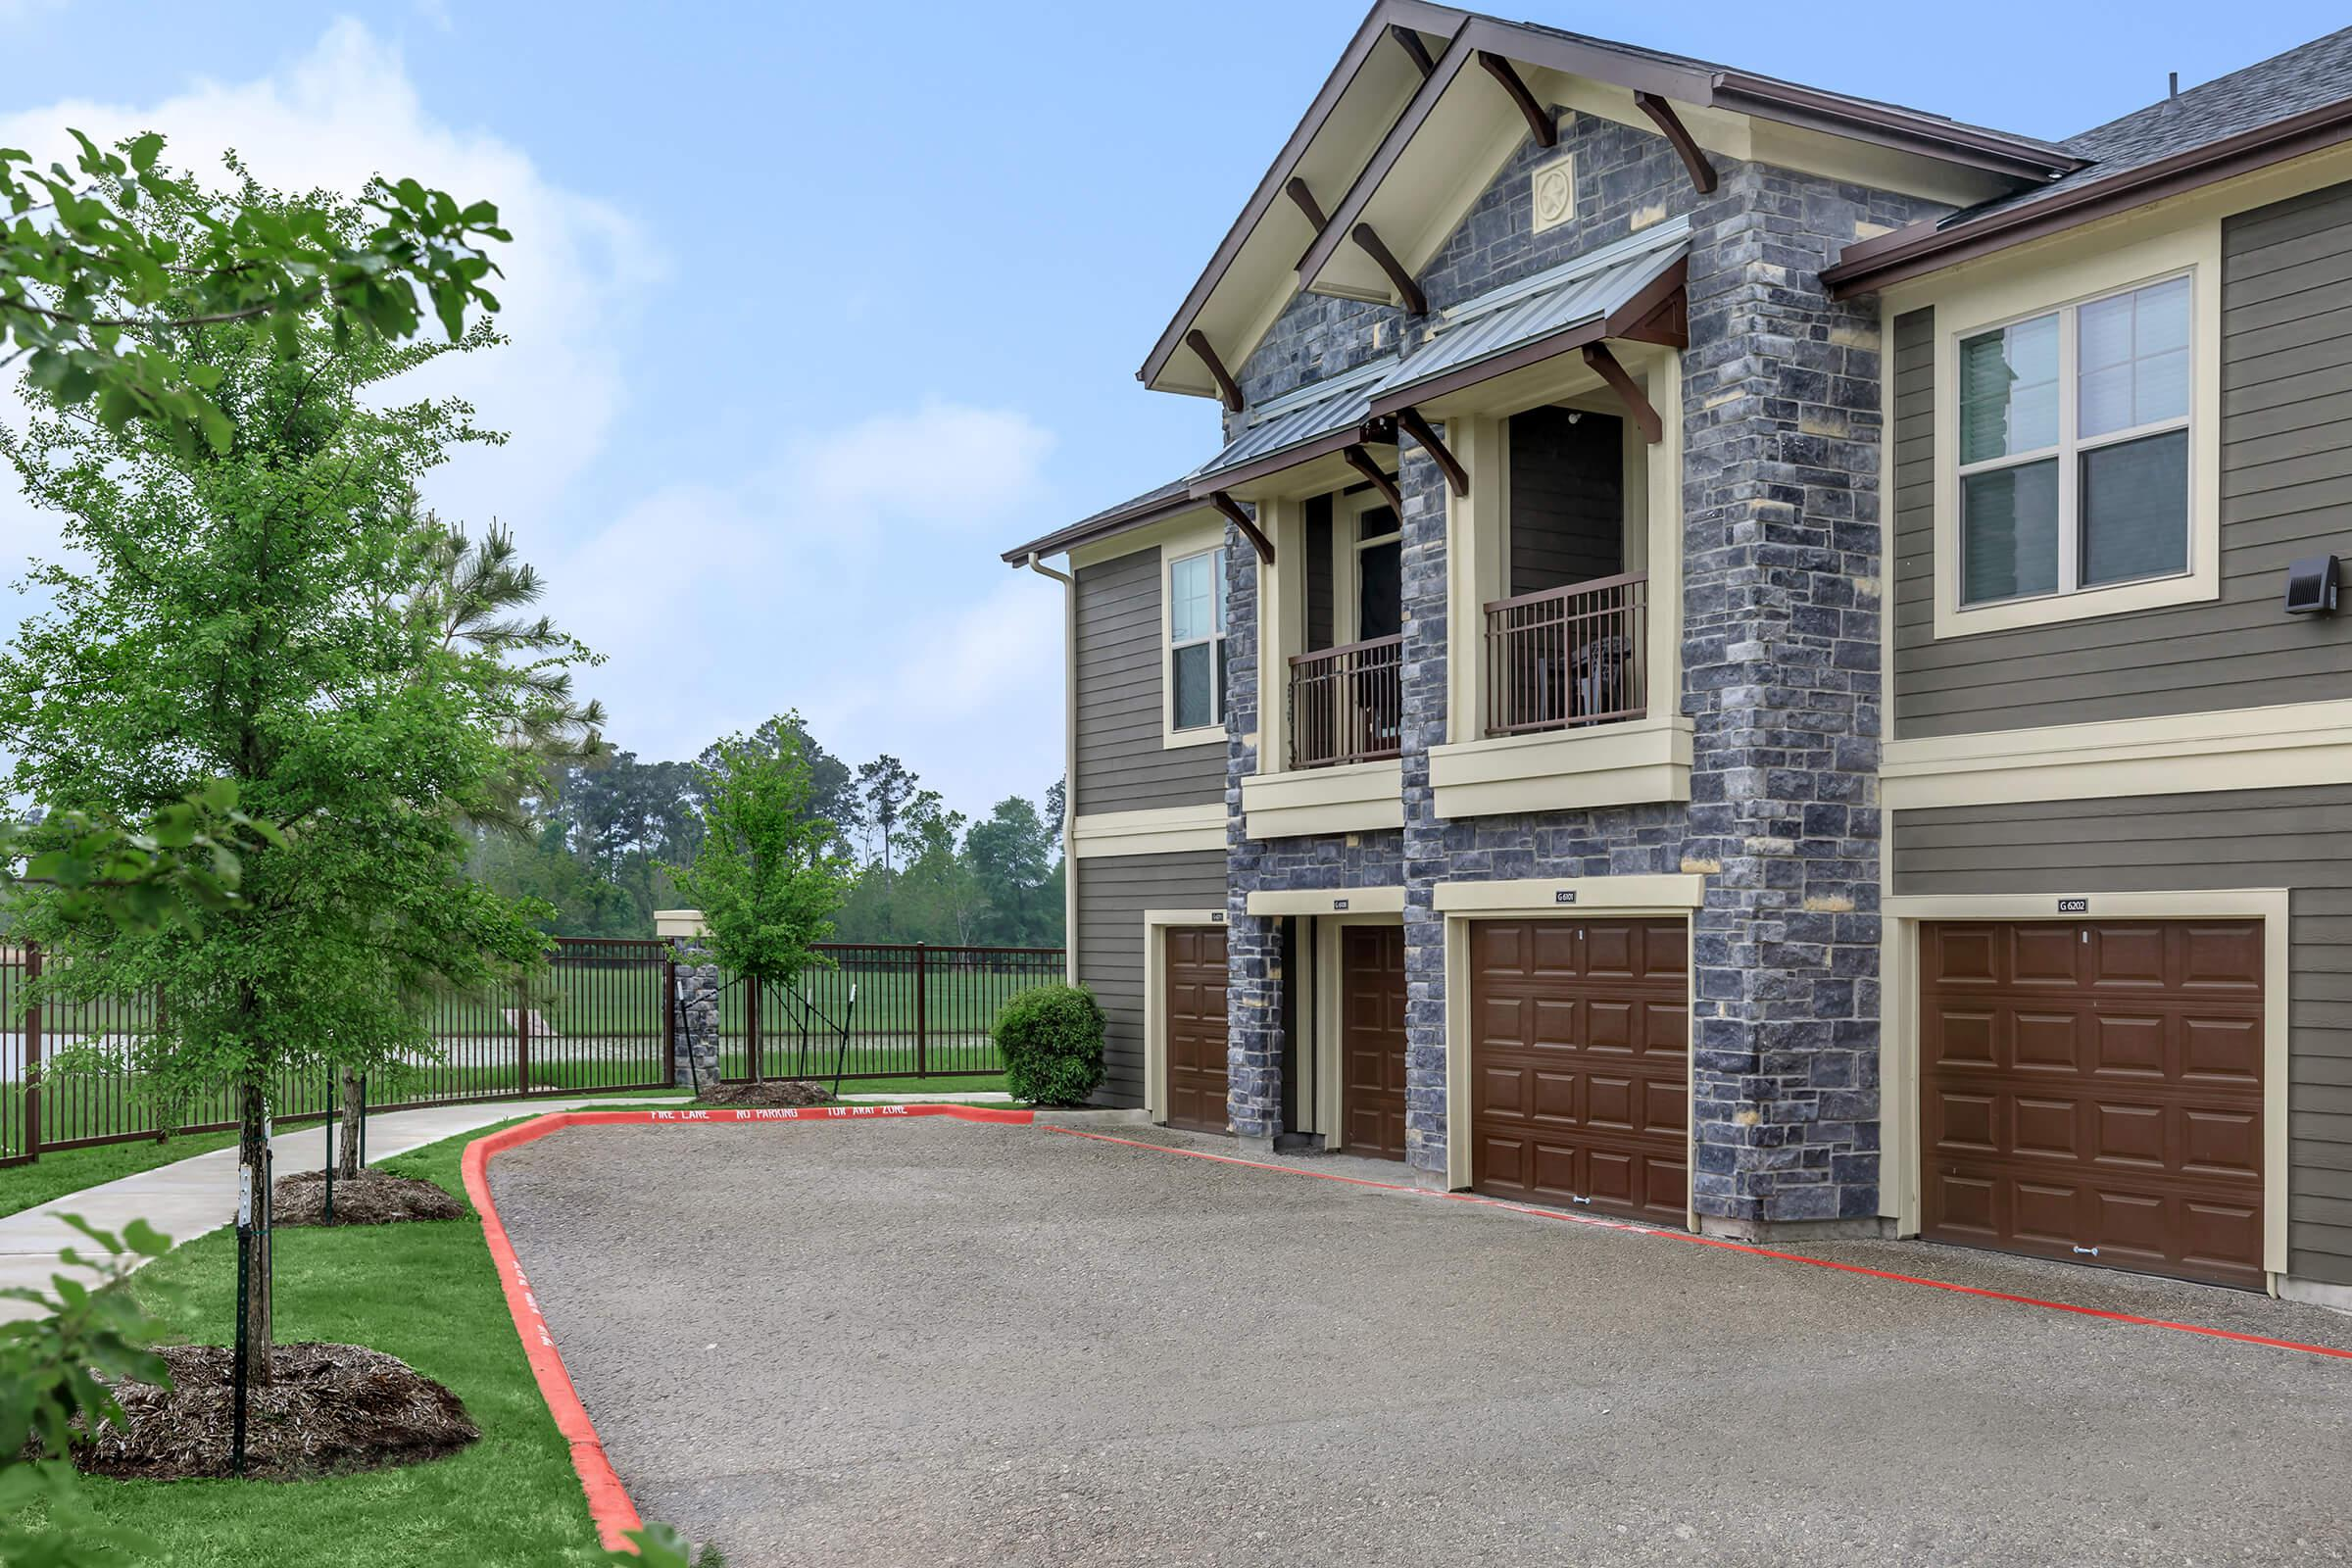 Attached garages at Park at Tour 18 apartments and paved walking trail through the landscaping.